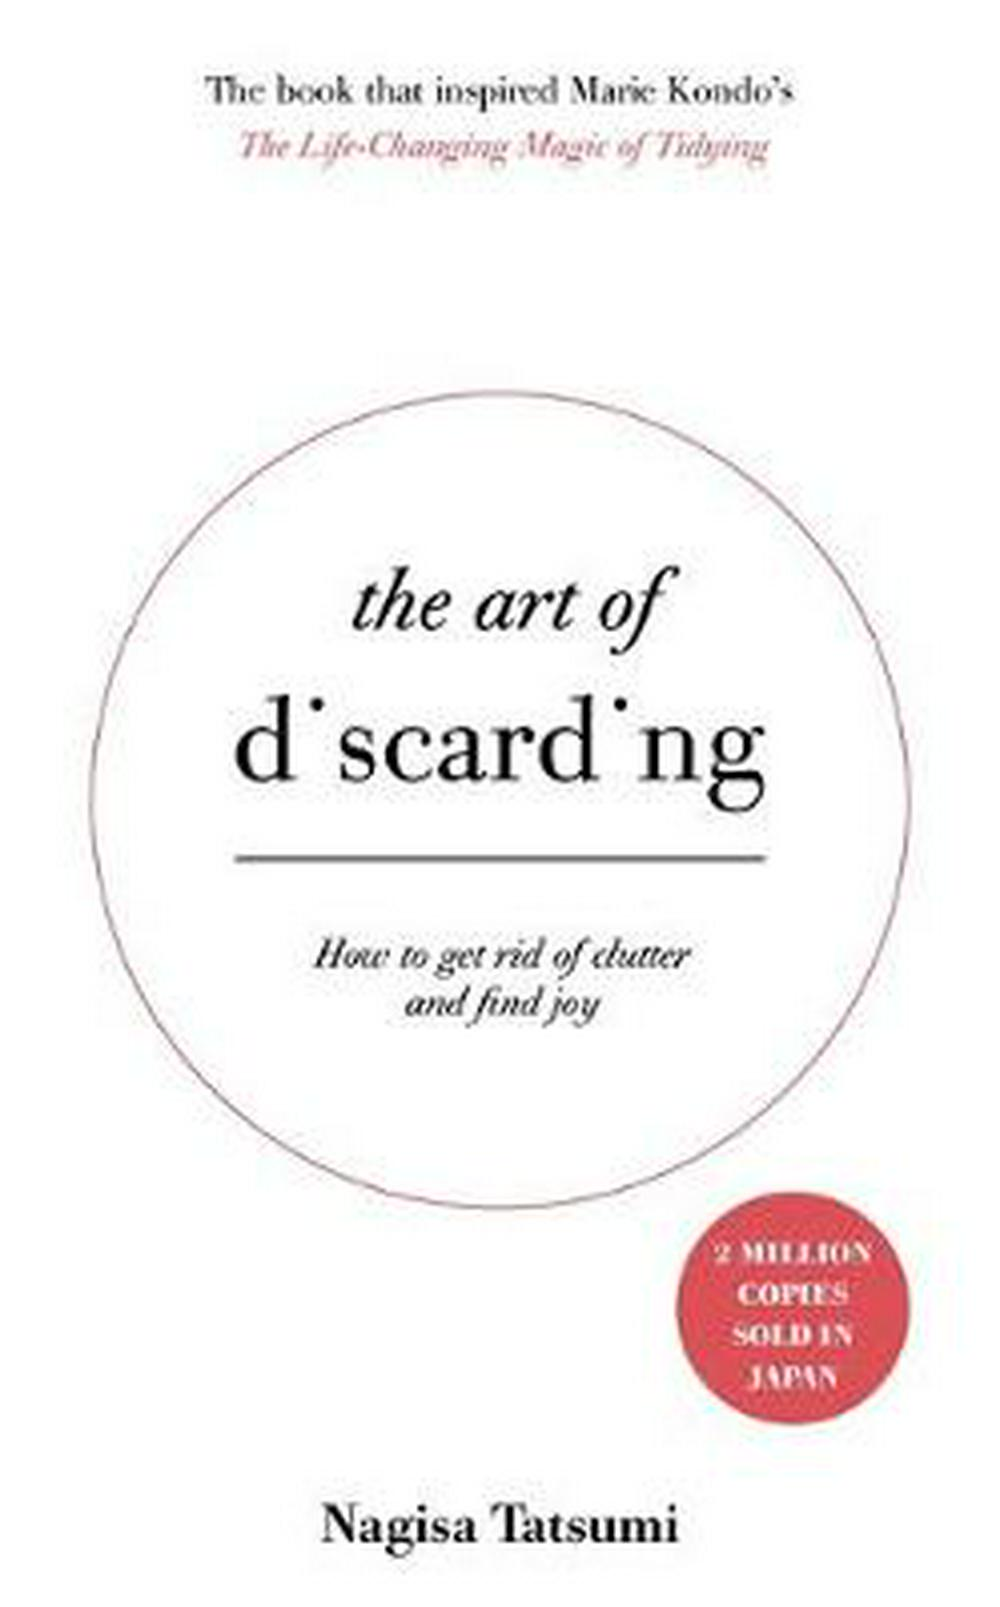 The Art of Discarding: How to get rid of clutter and find joy by Nagisa Tatsumi, ISBN: 9781473648210